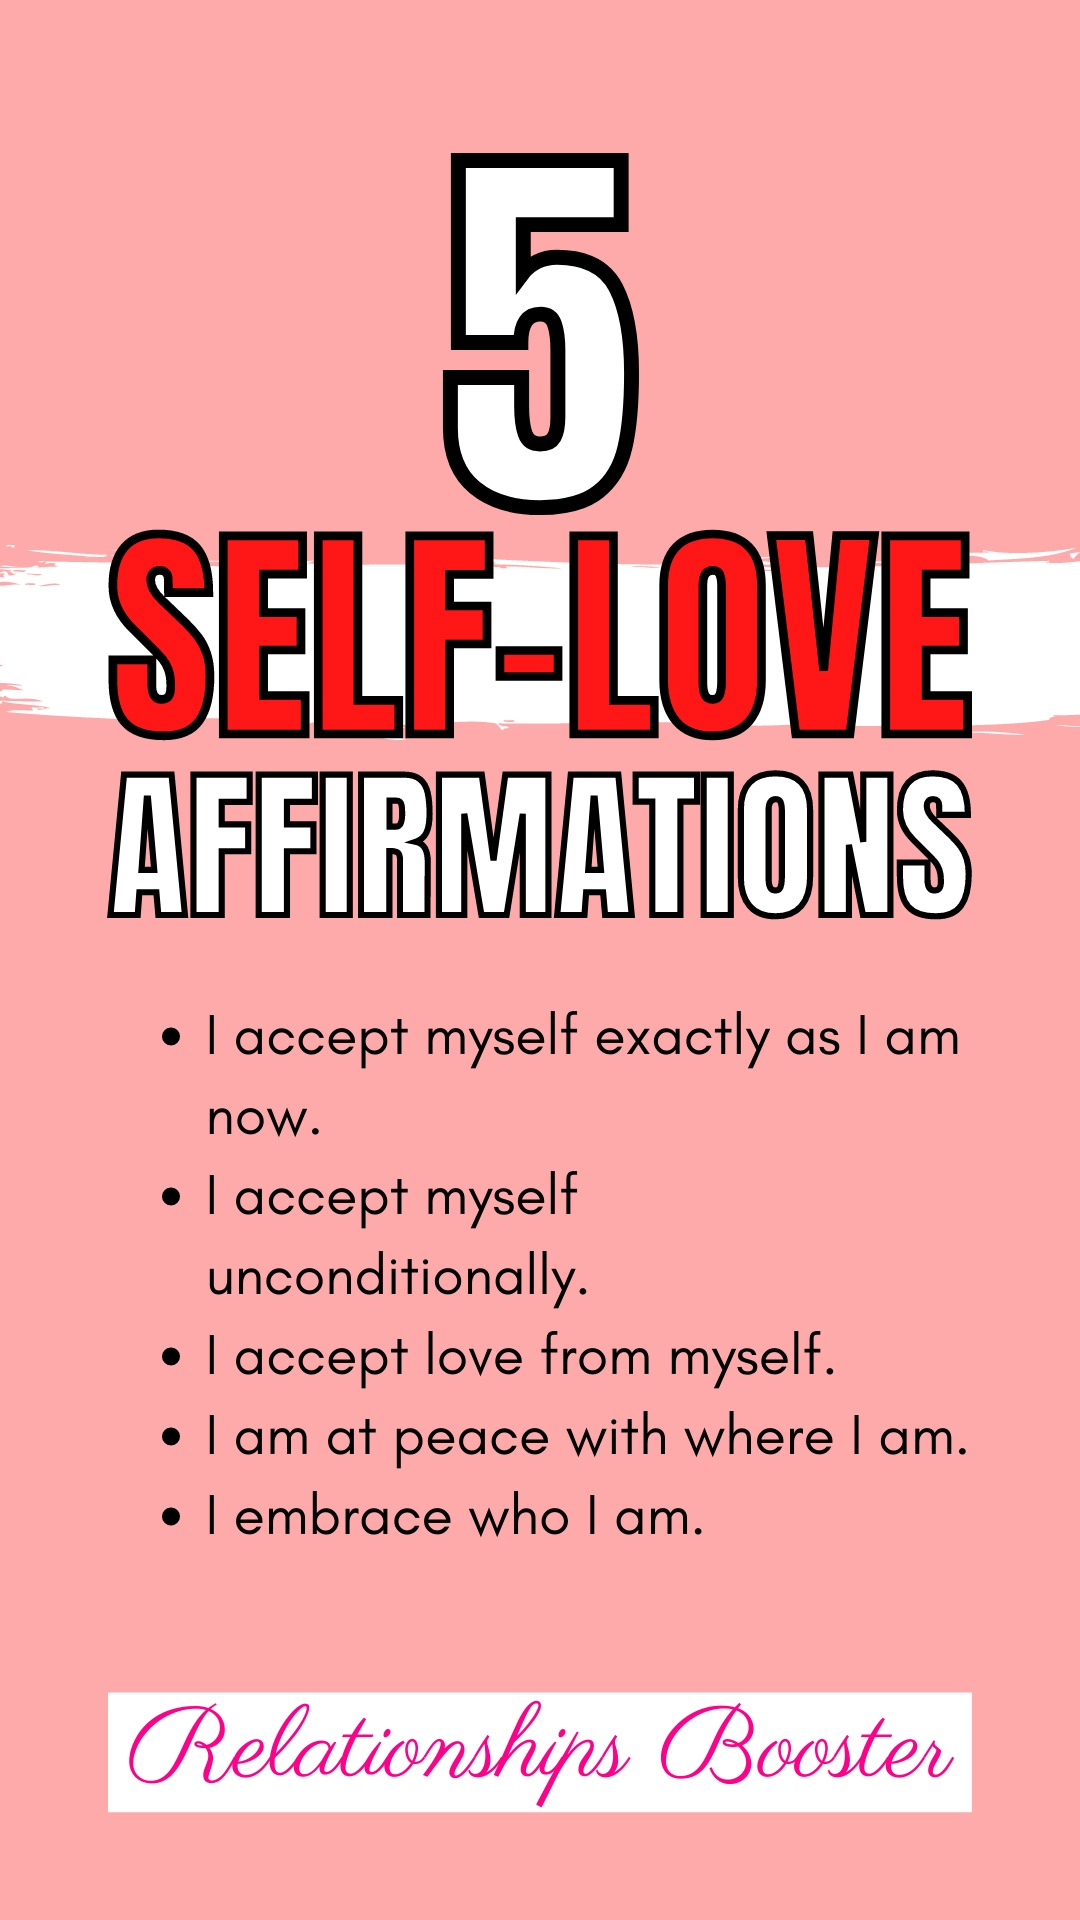 5 Self-Love Affirmations to Feel & Attract More Love